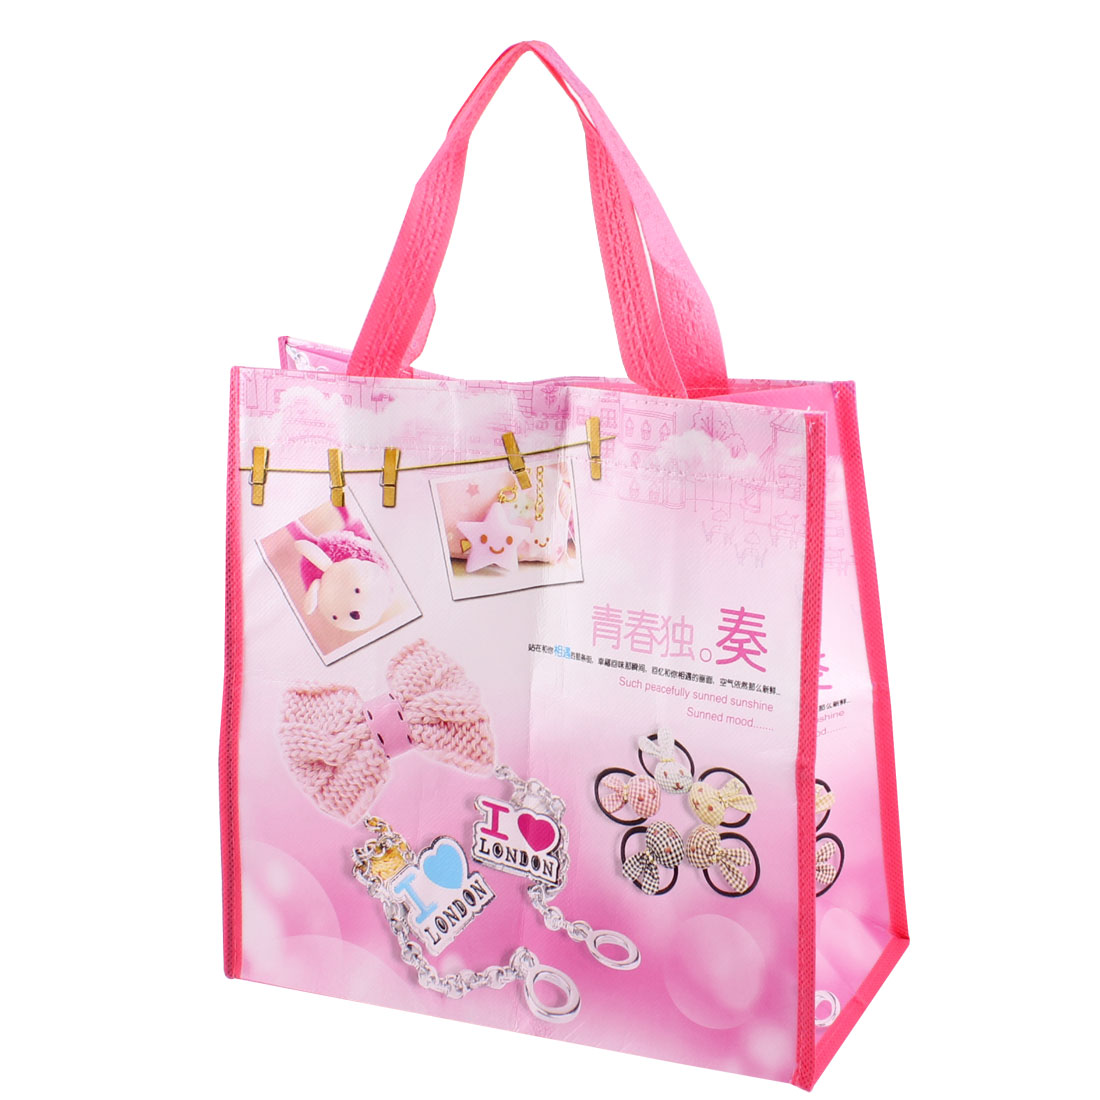 Hook Loop Fastener Foldable Bowtie Pattern Shopping Tote Bag Pink White